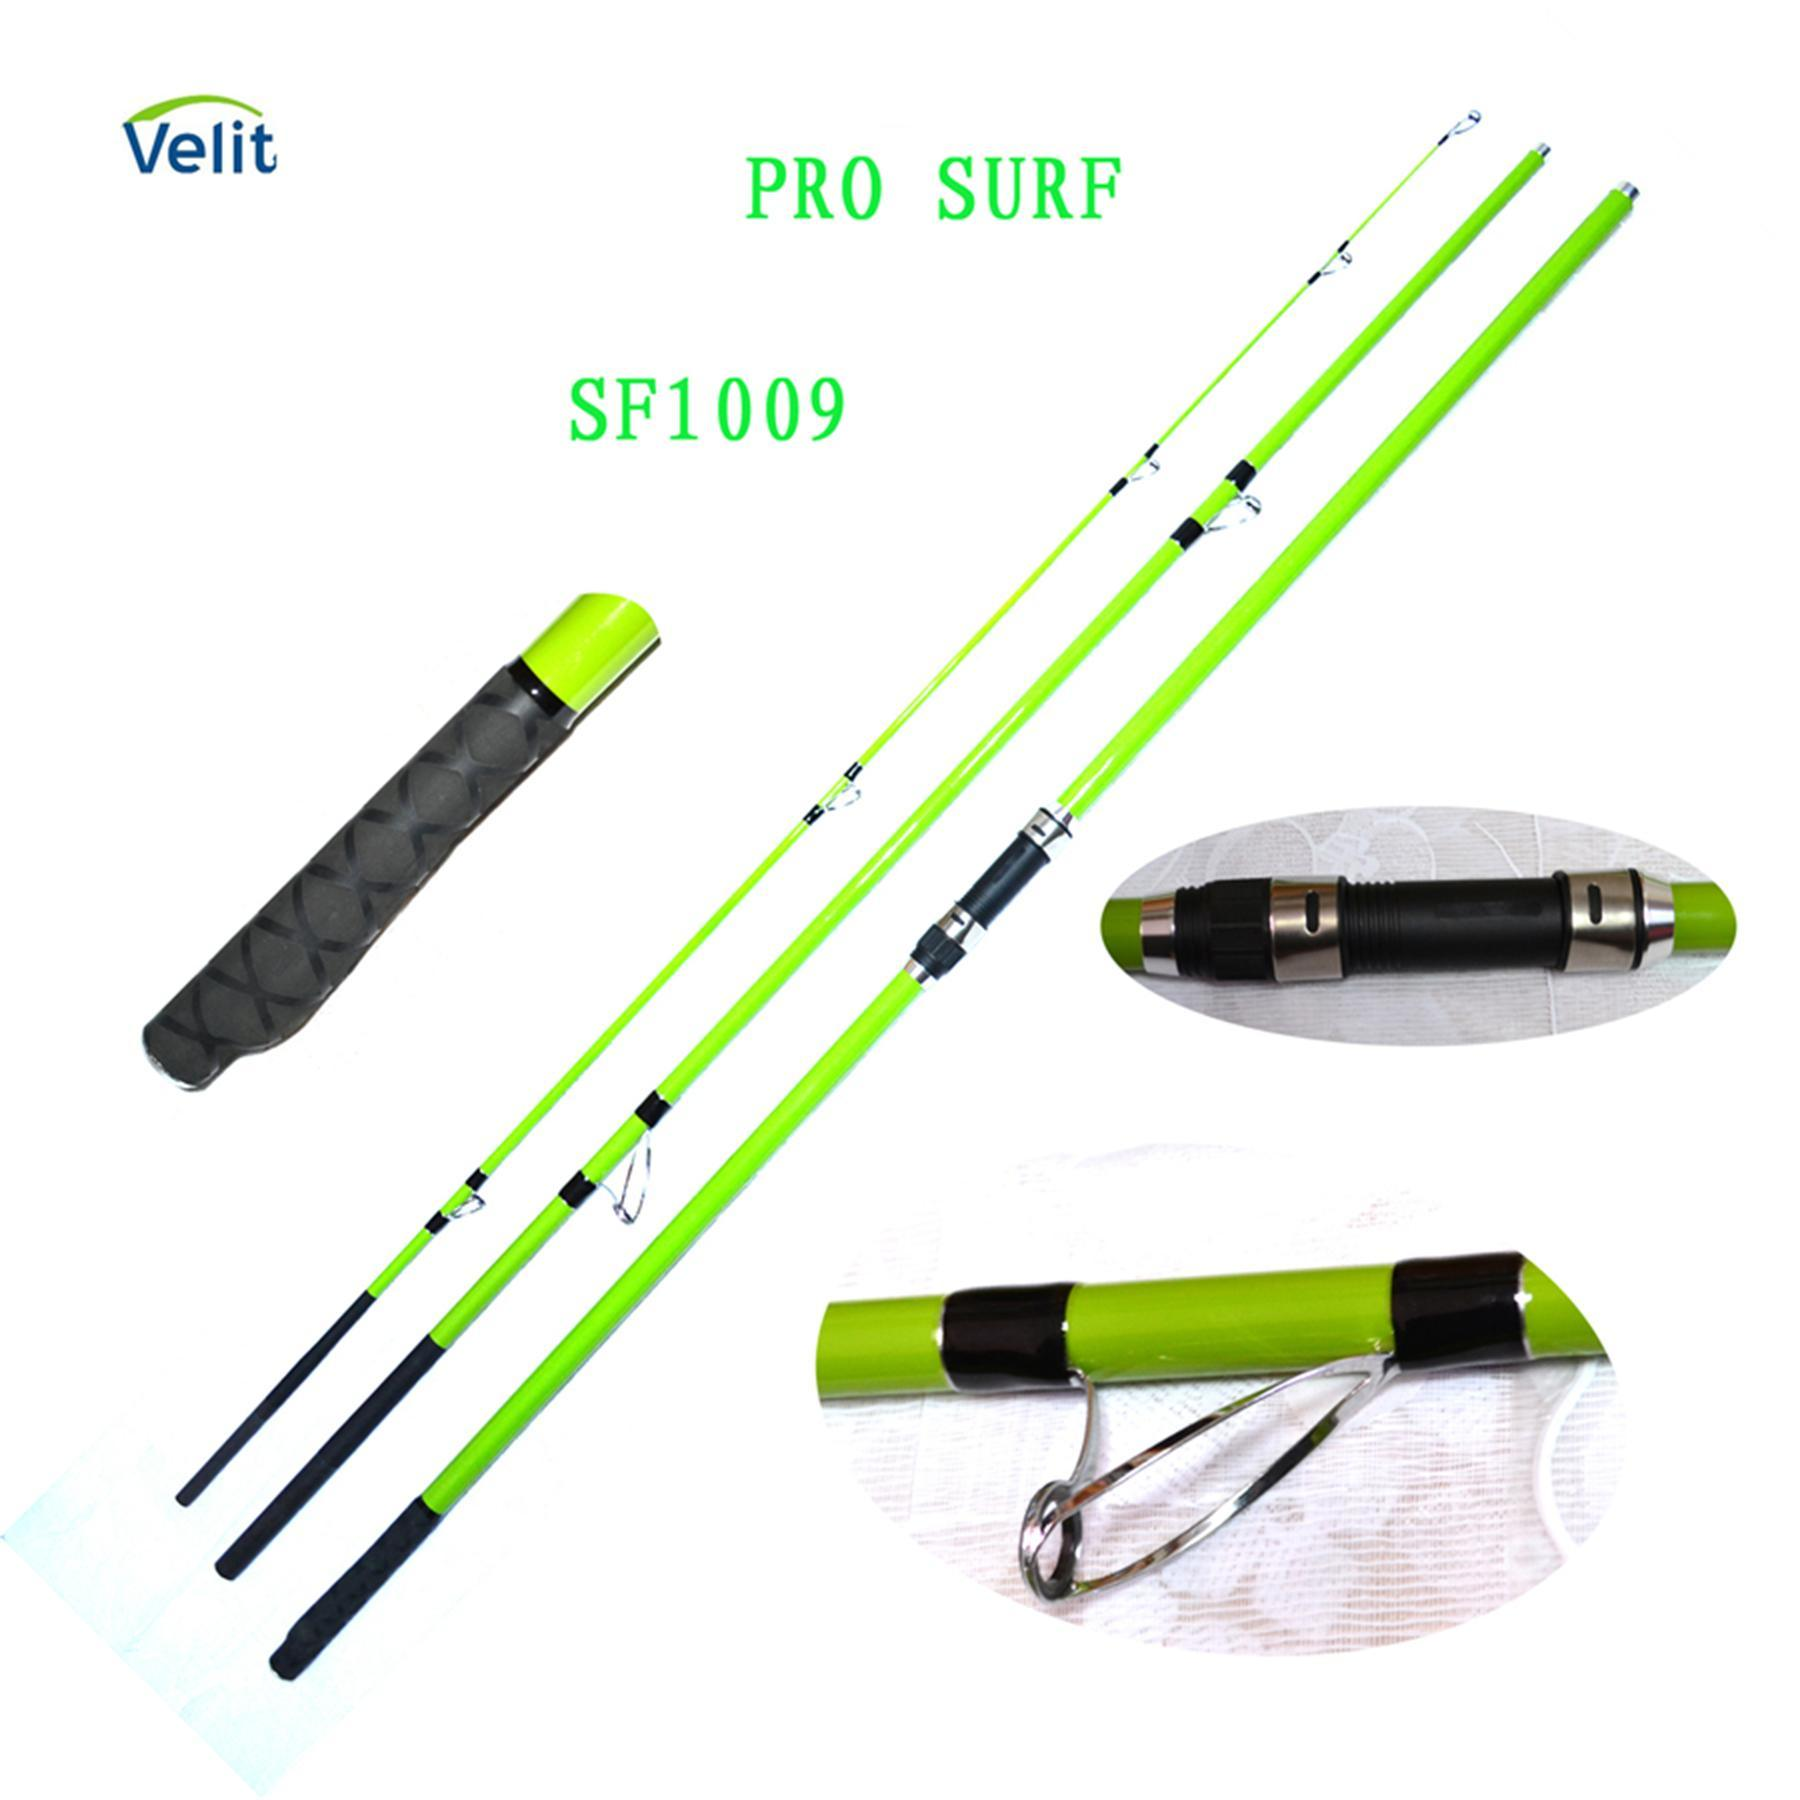 China fishing tackle sf1009 surf rod photos pictures for Surf fishing tackle